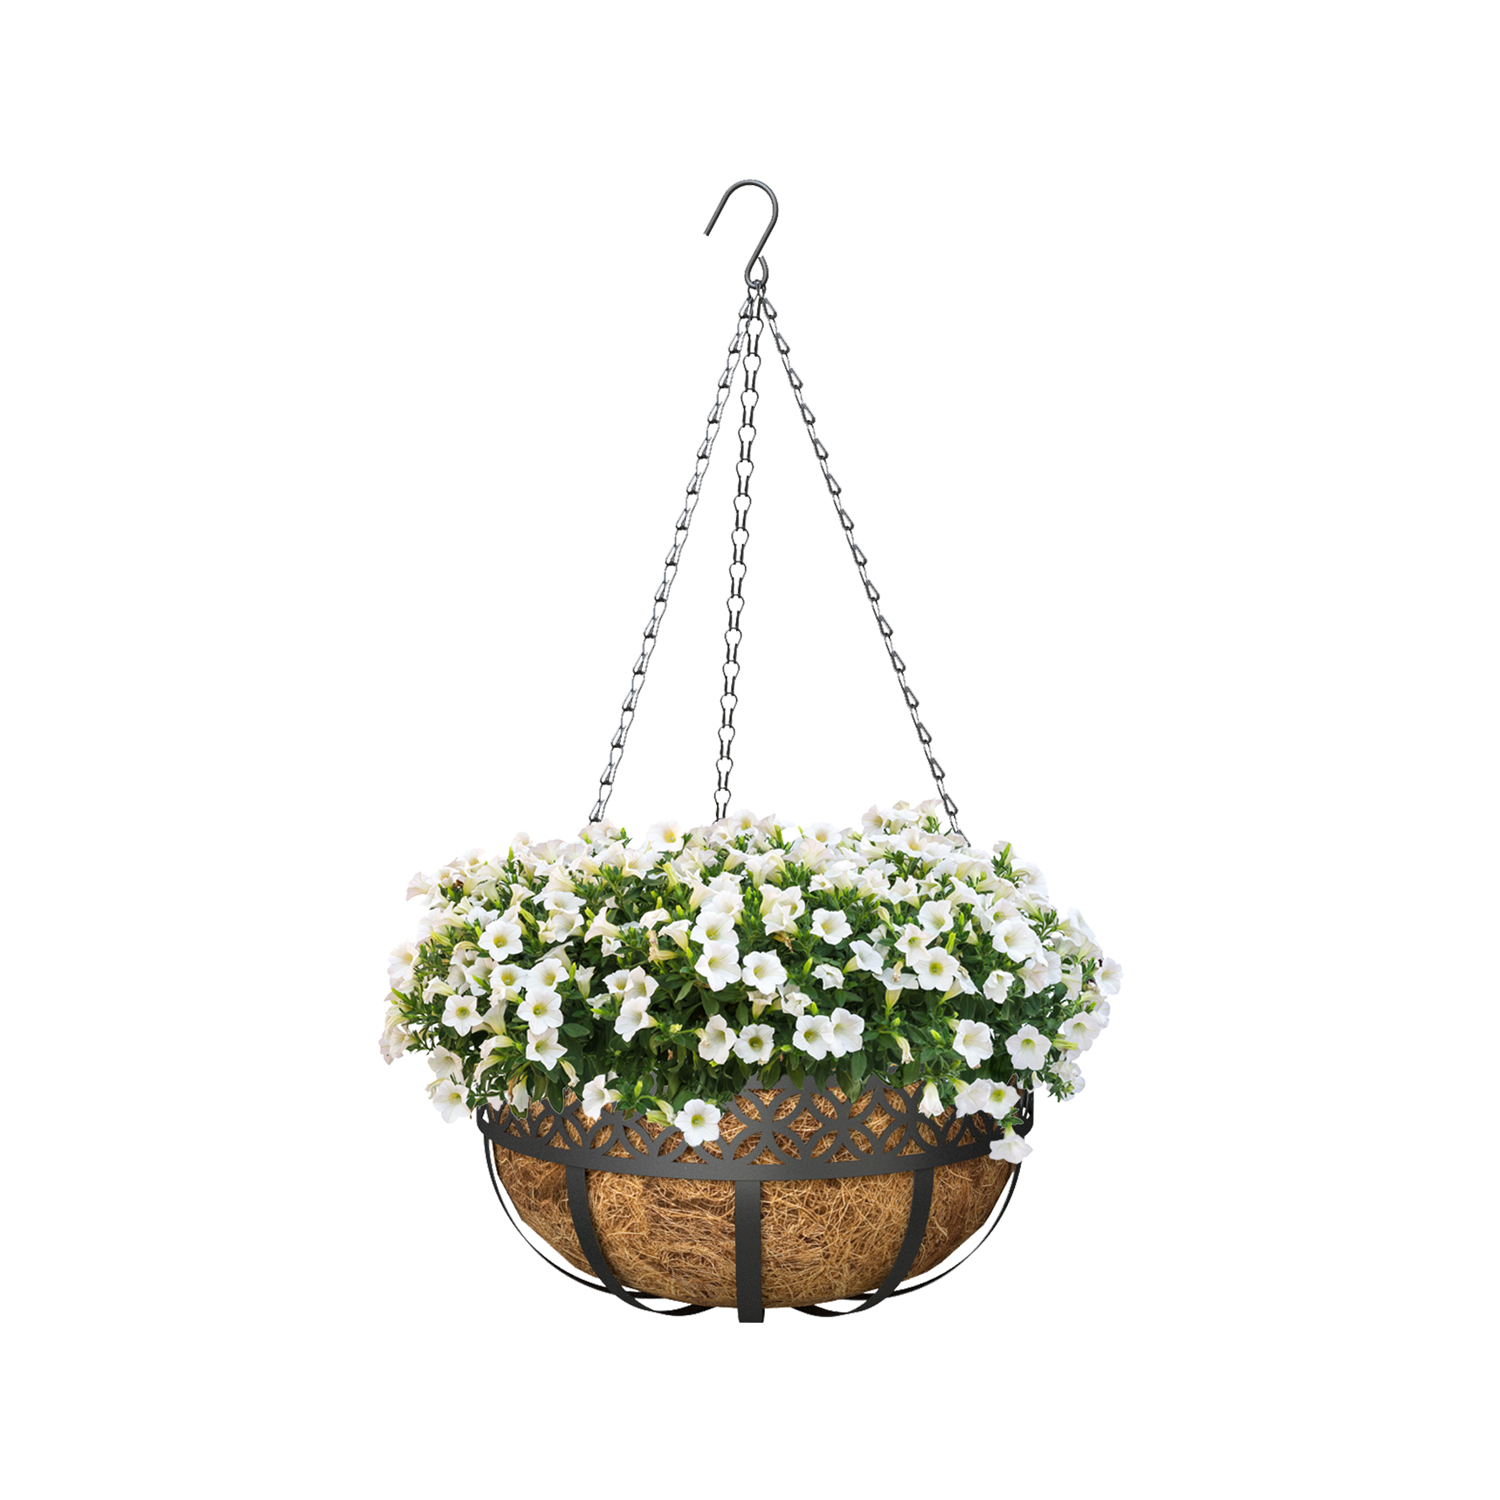 Better Homes and Gardens 18 in. Outdoor Lattice Coco Basket - Set of 2